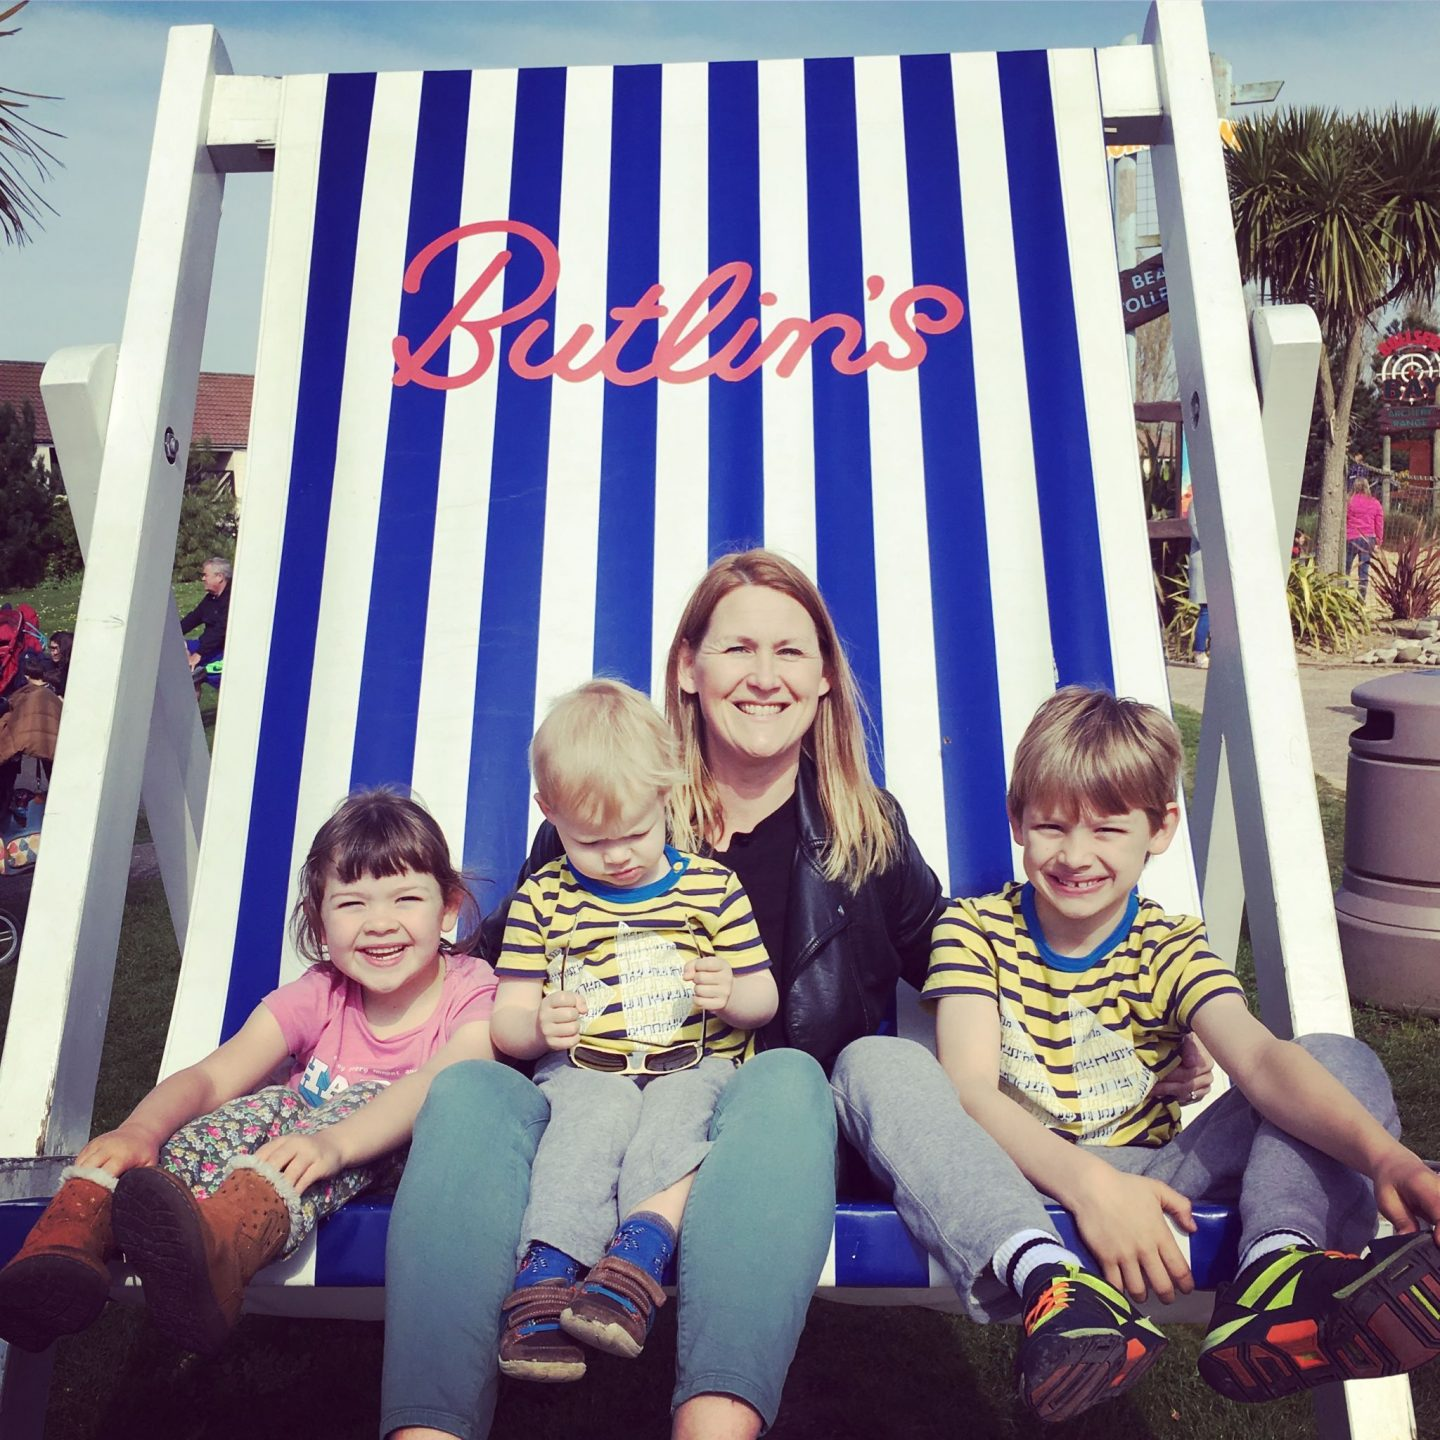 Half-Term Fun at Butlins (Yes, Butlins!)